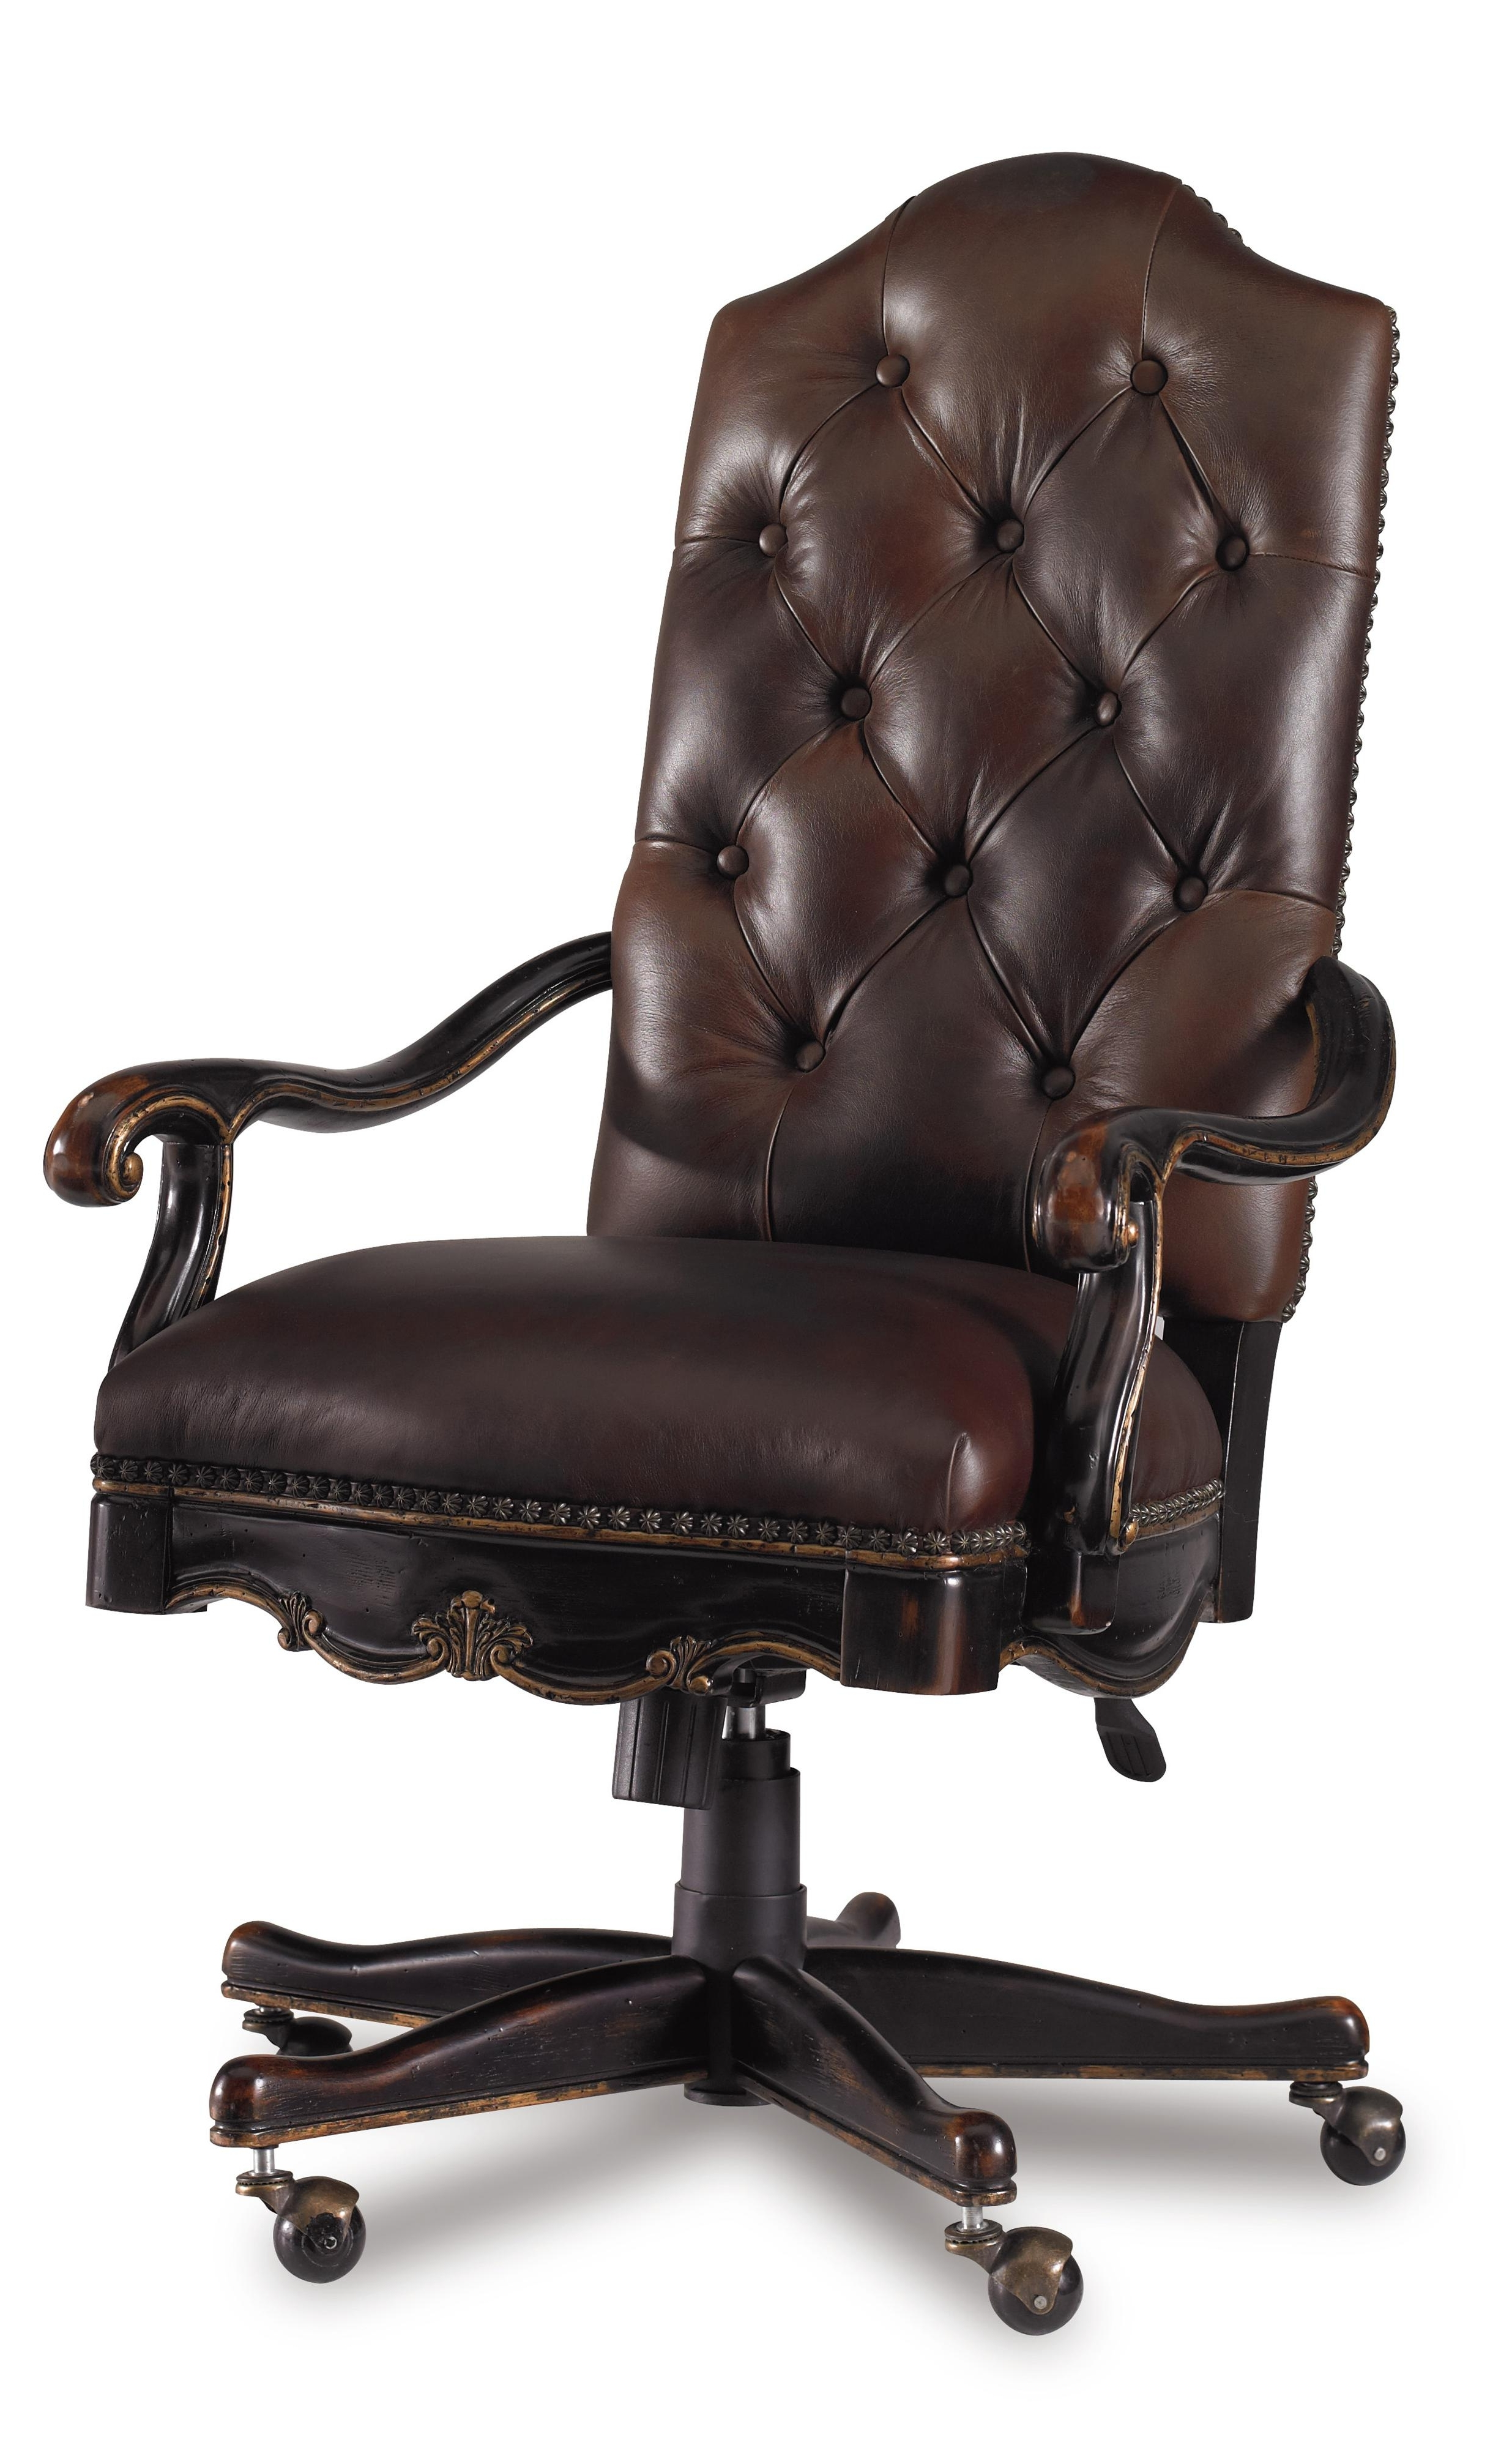 Verona Cream Executive Leather Office Chairs With Recent Chair : Martinez Executive Tilt Leather Office Chair Big And Tall (Gallery 4 of 20)